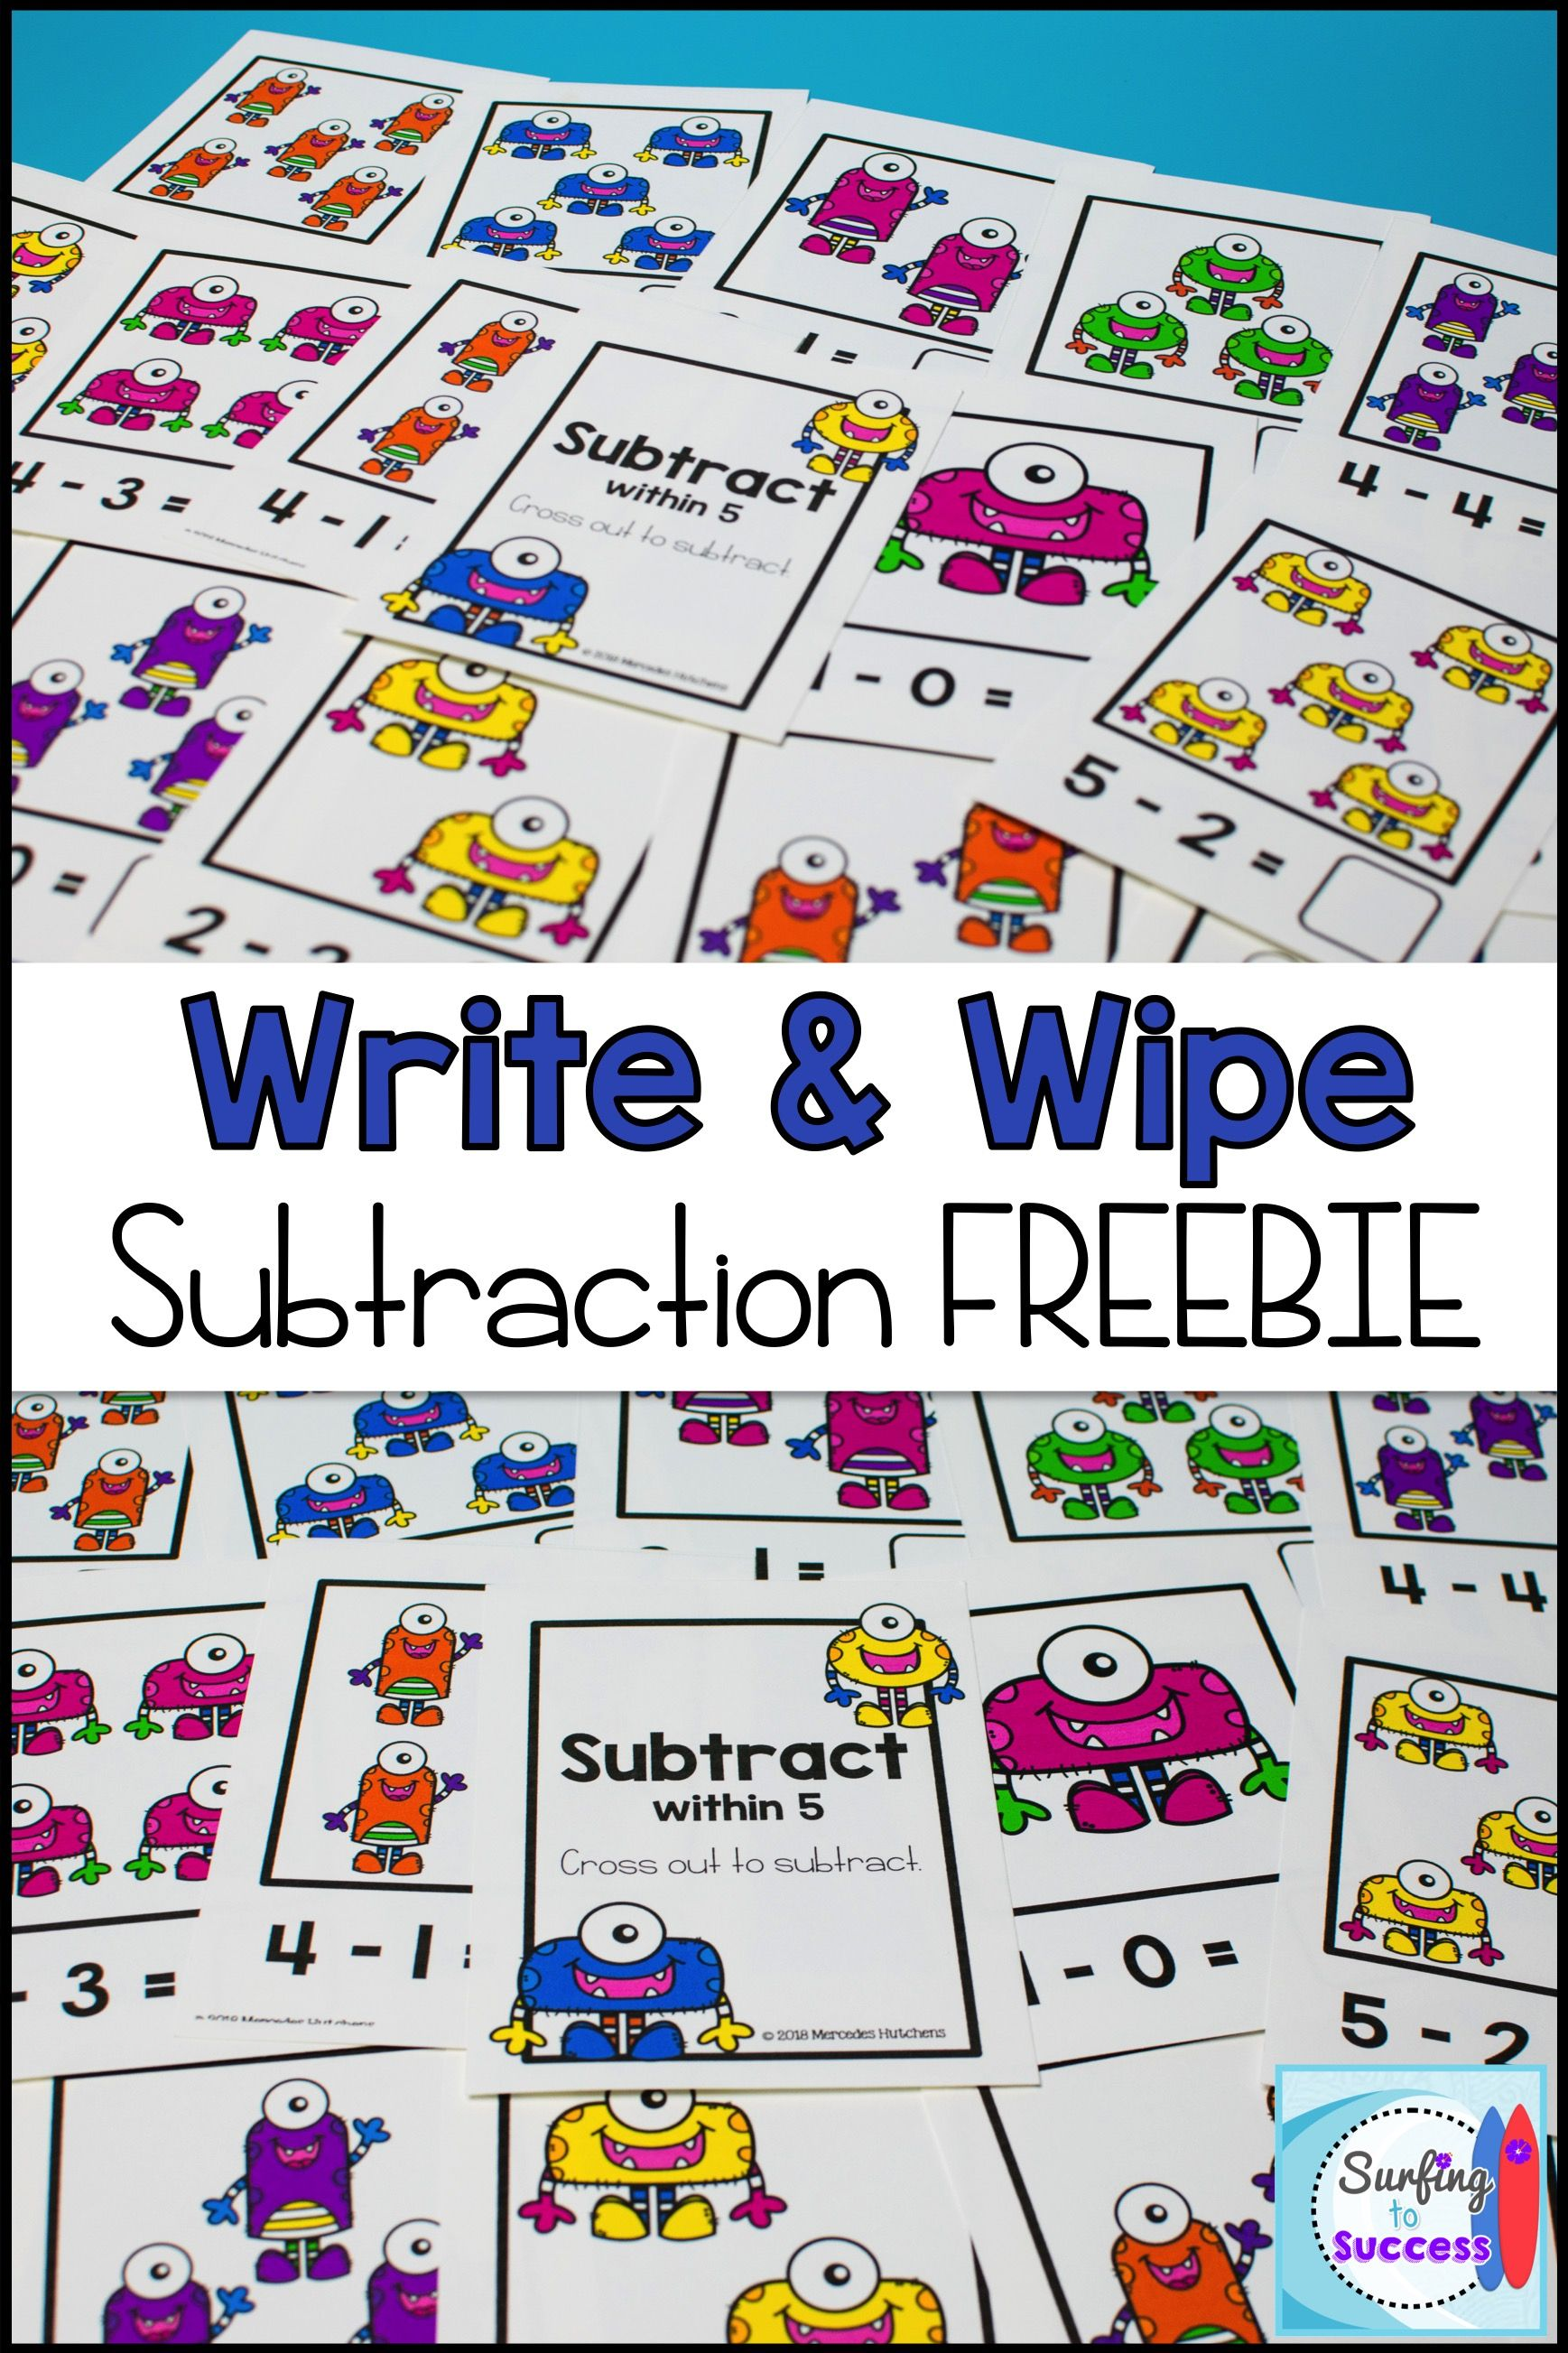 Subtraction Write and Wipe FREE Sample Subtract within 5